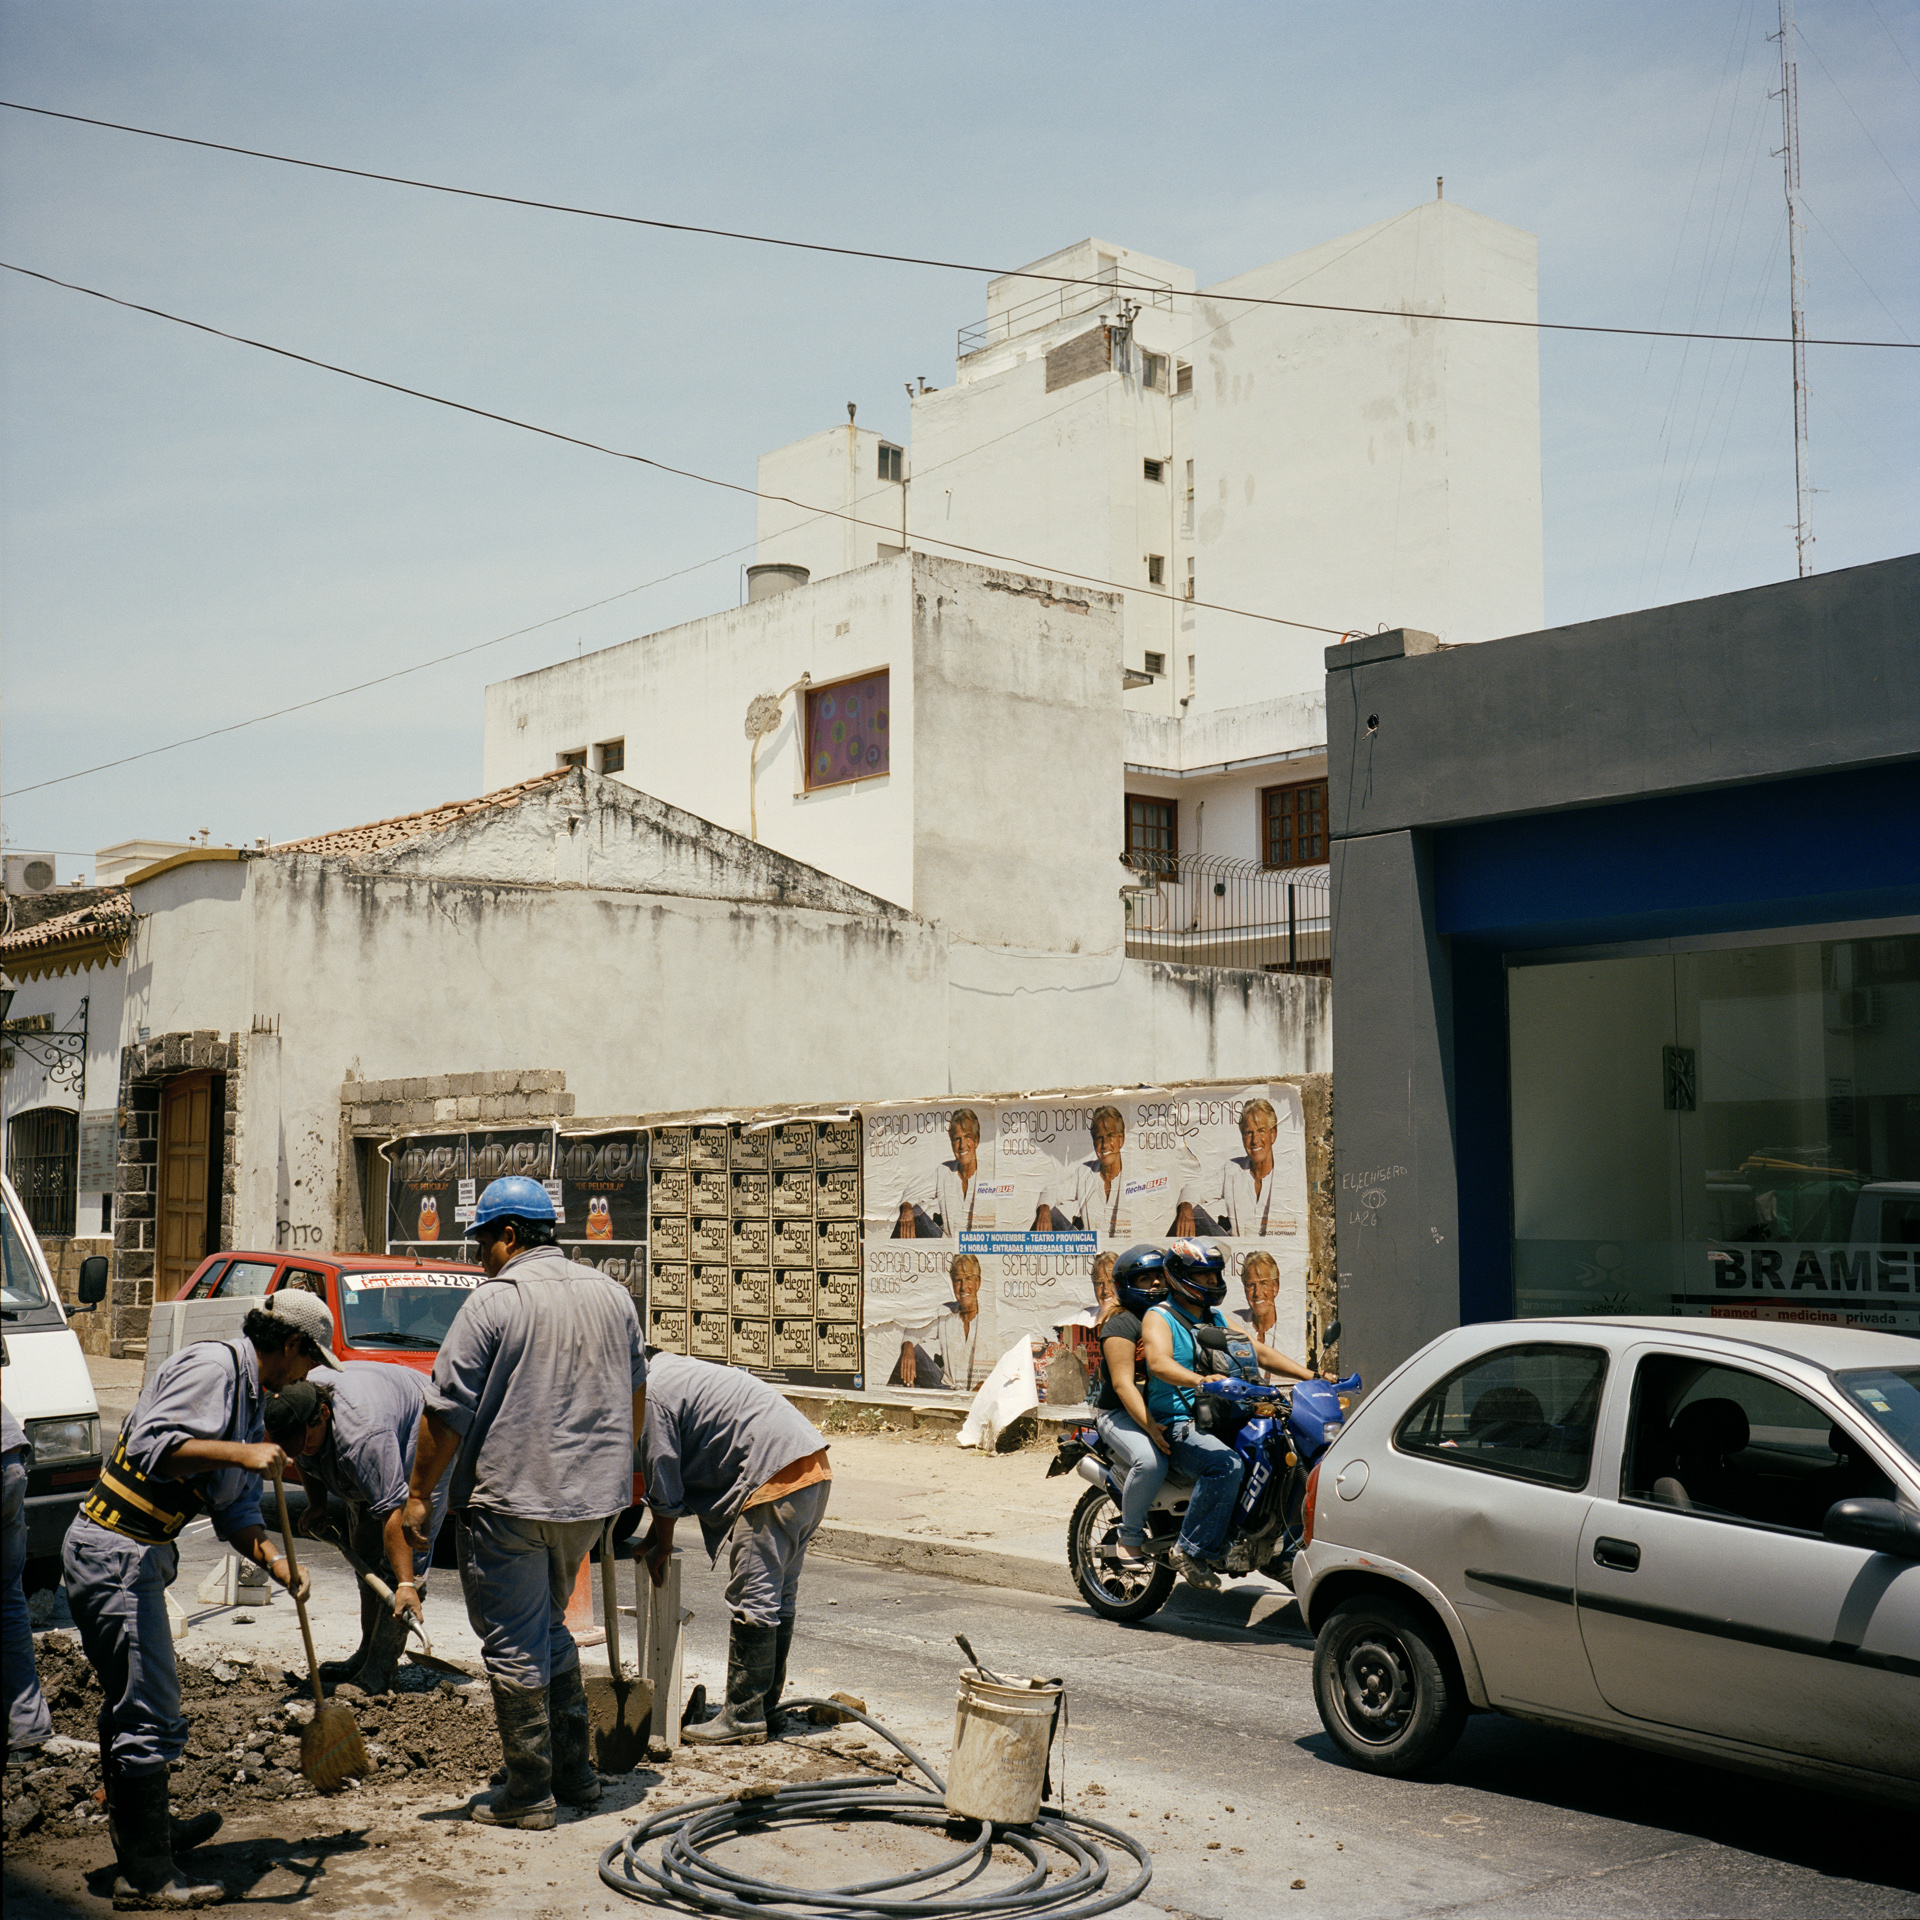 Salta. Construction workers and traffic.